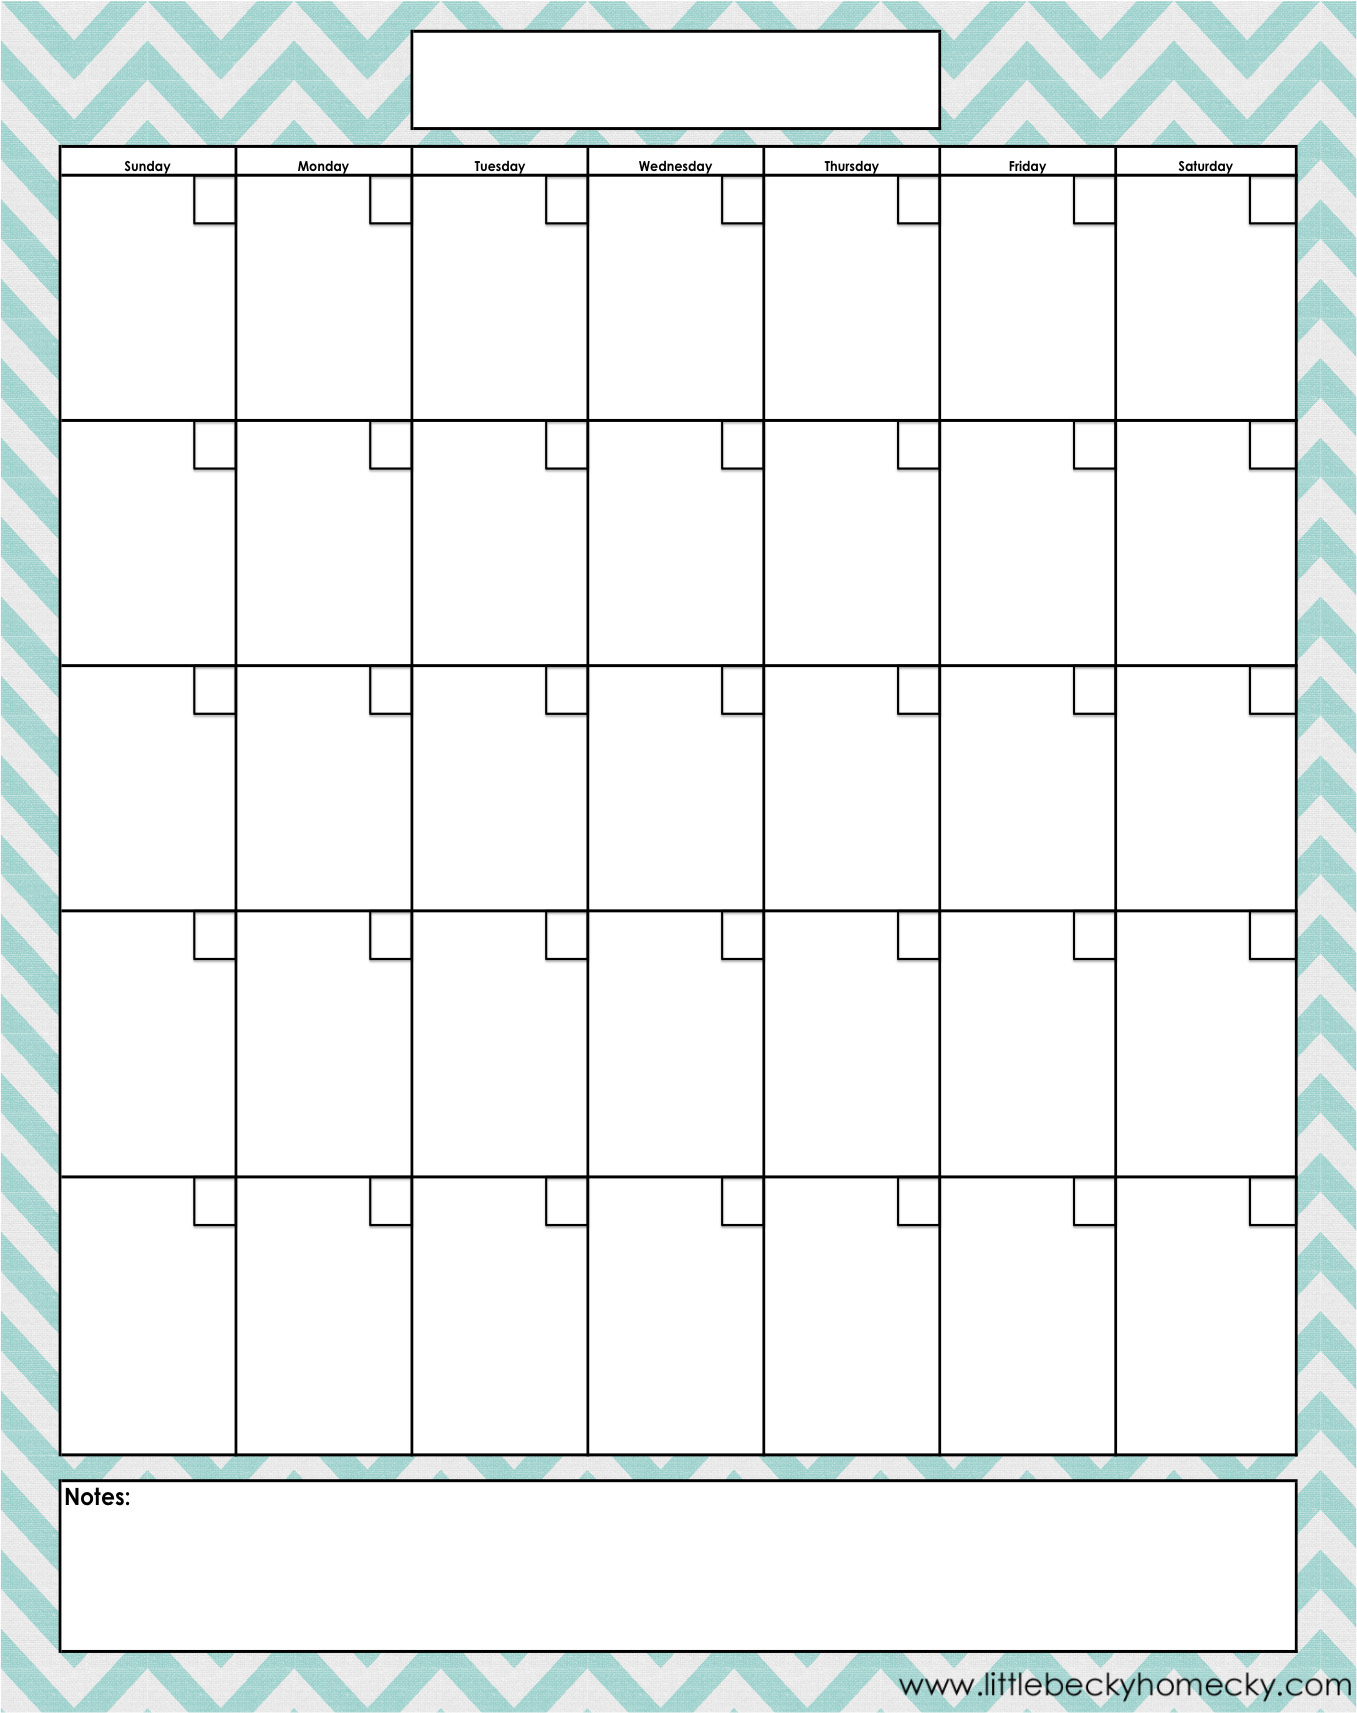 Blank-Monthly-Calendar-Printable-Pdfs in Blank 30 Day Month Calendar